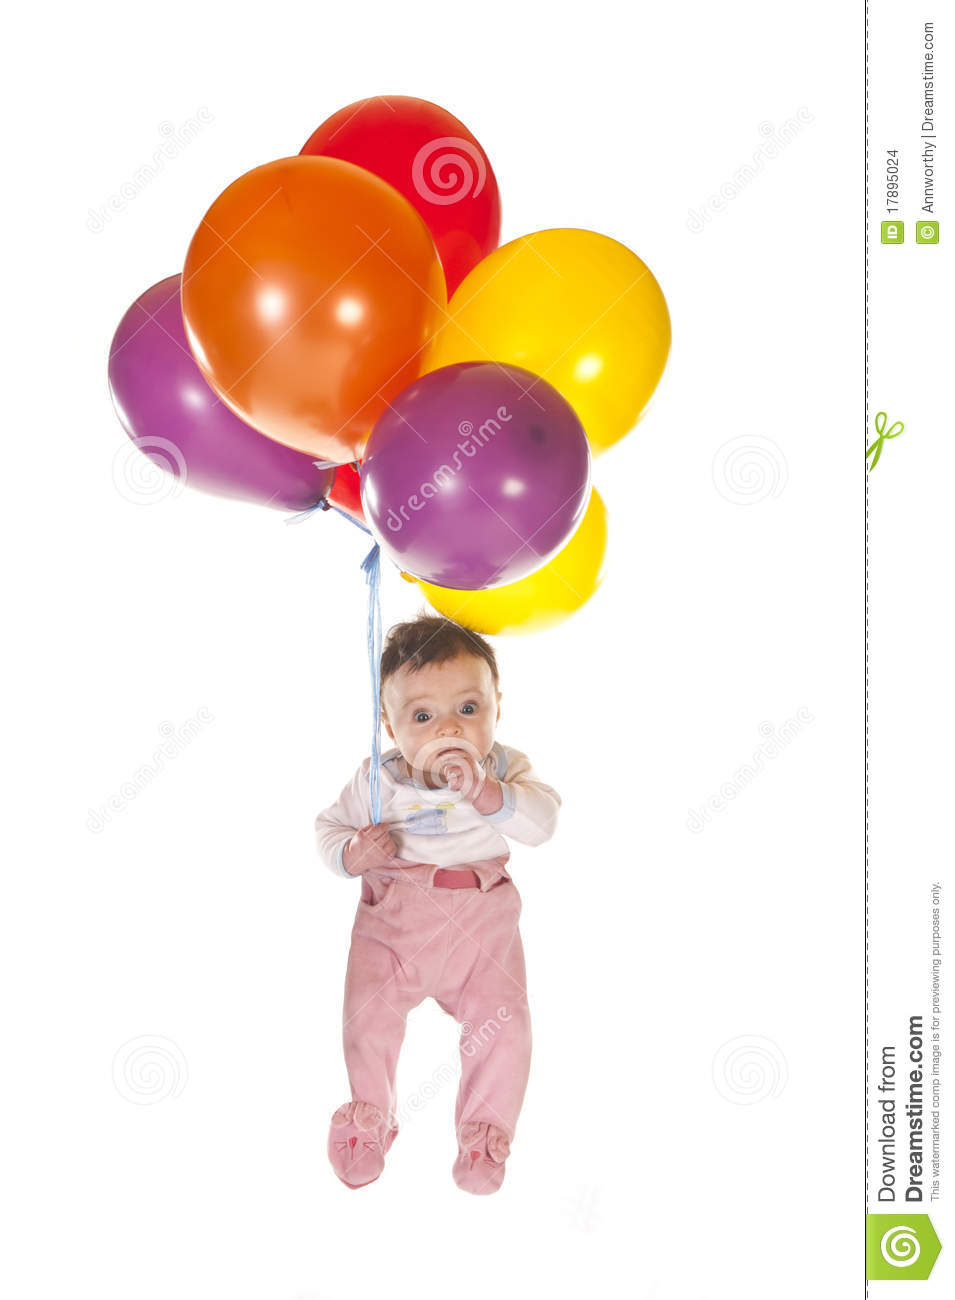 Baby With Balloons Stock Images - Image: 17895024